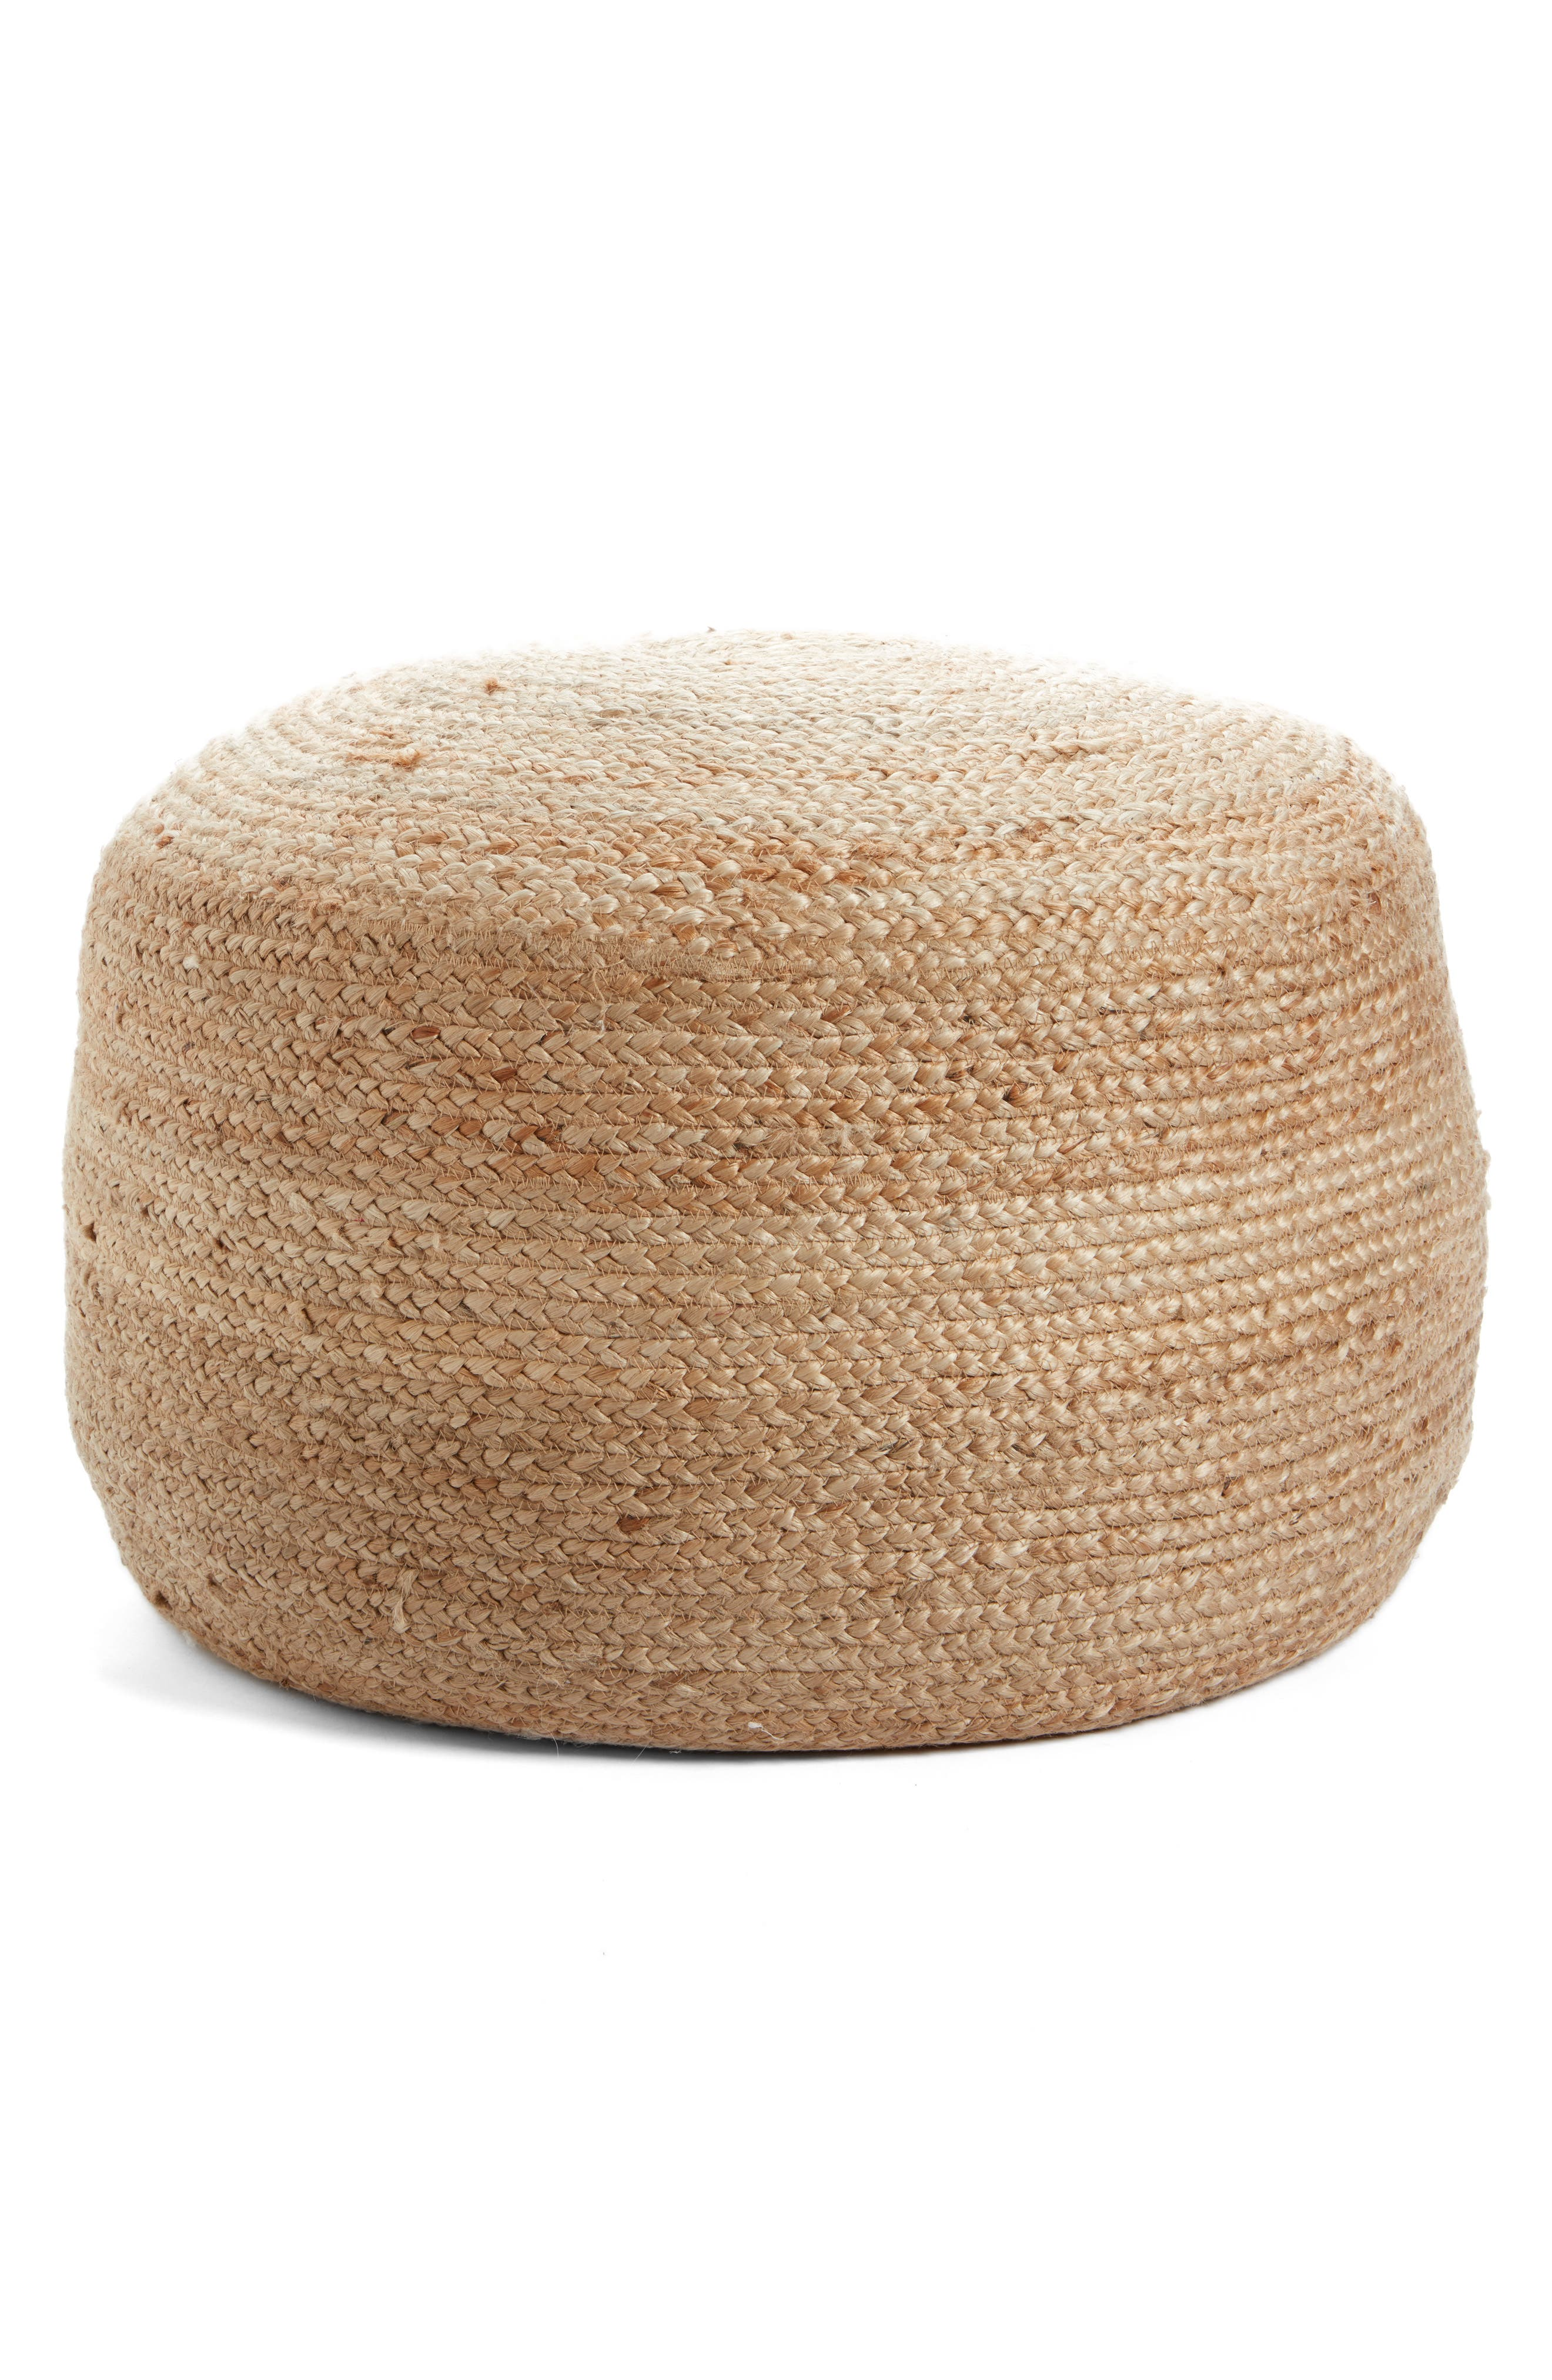 Indoor/Outdoor Jute Pouf,                         Main,                         color, 101